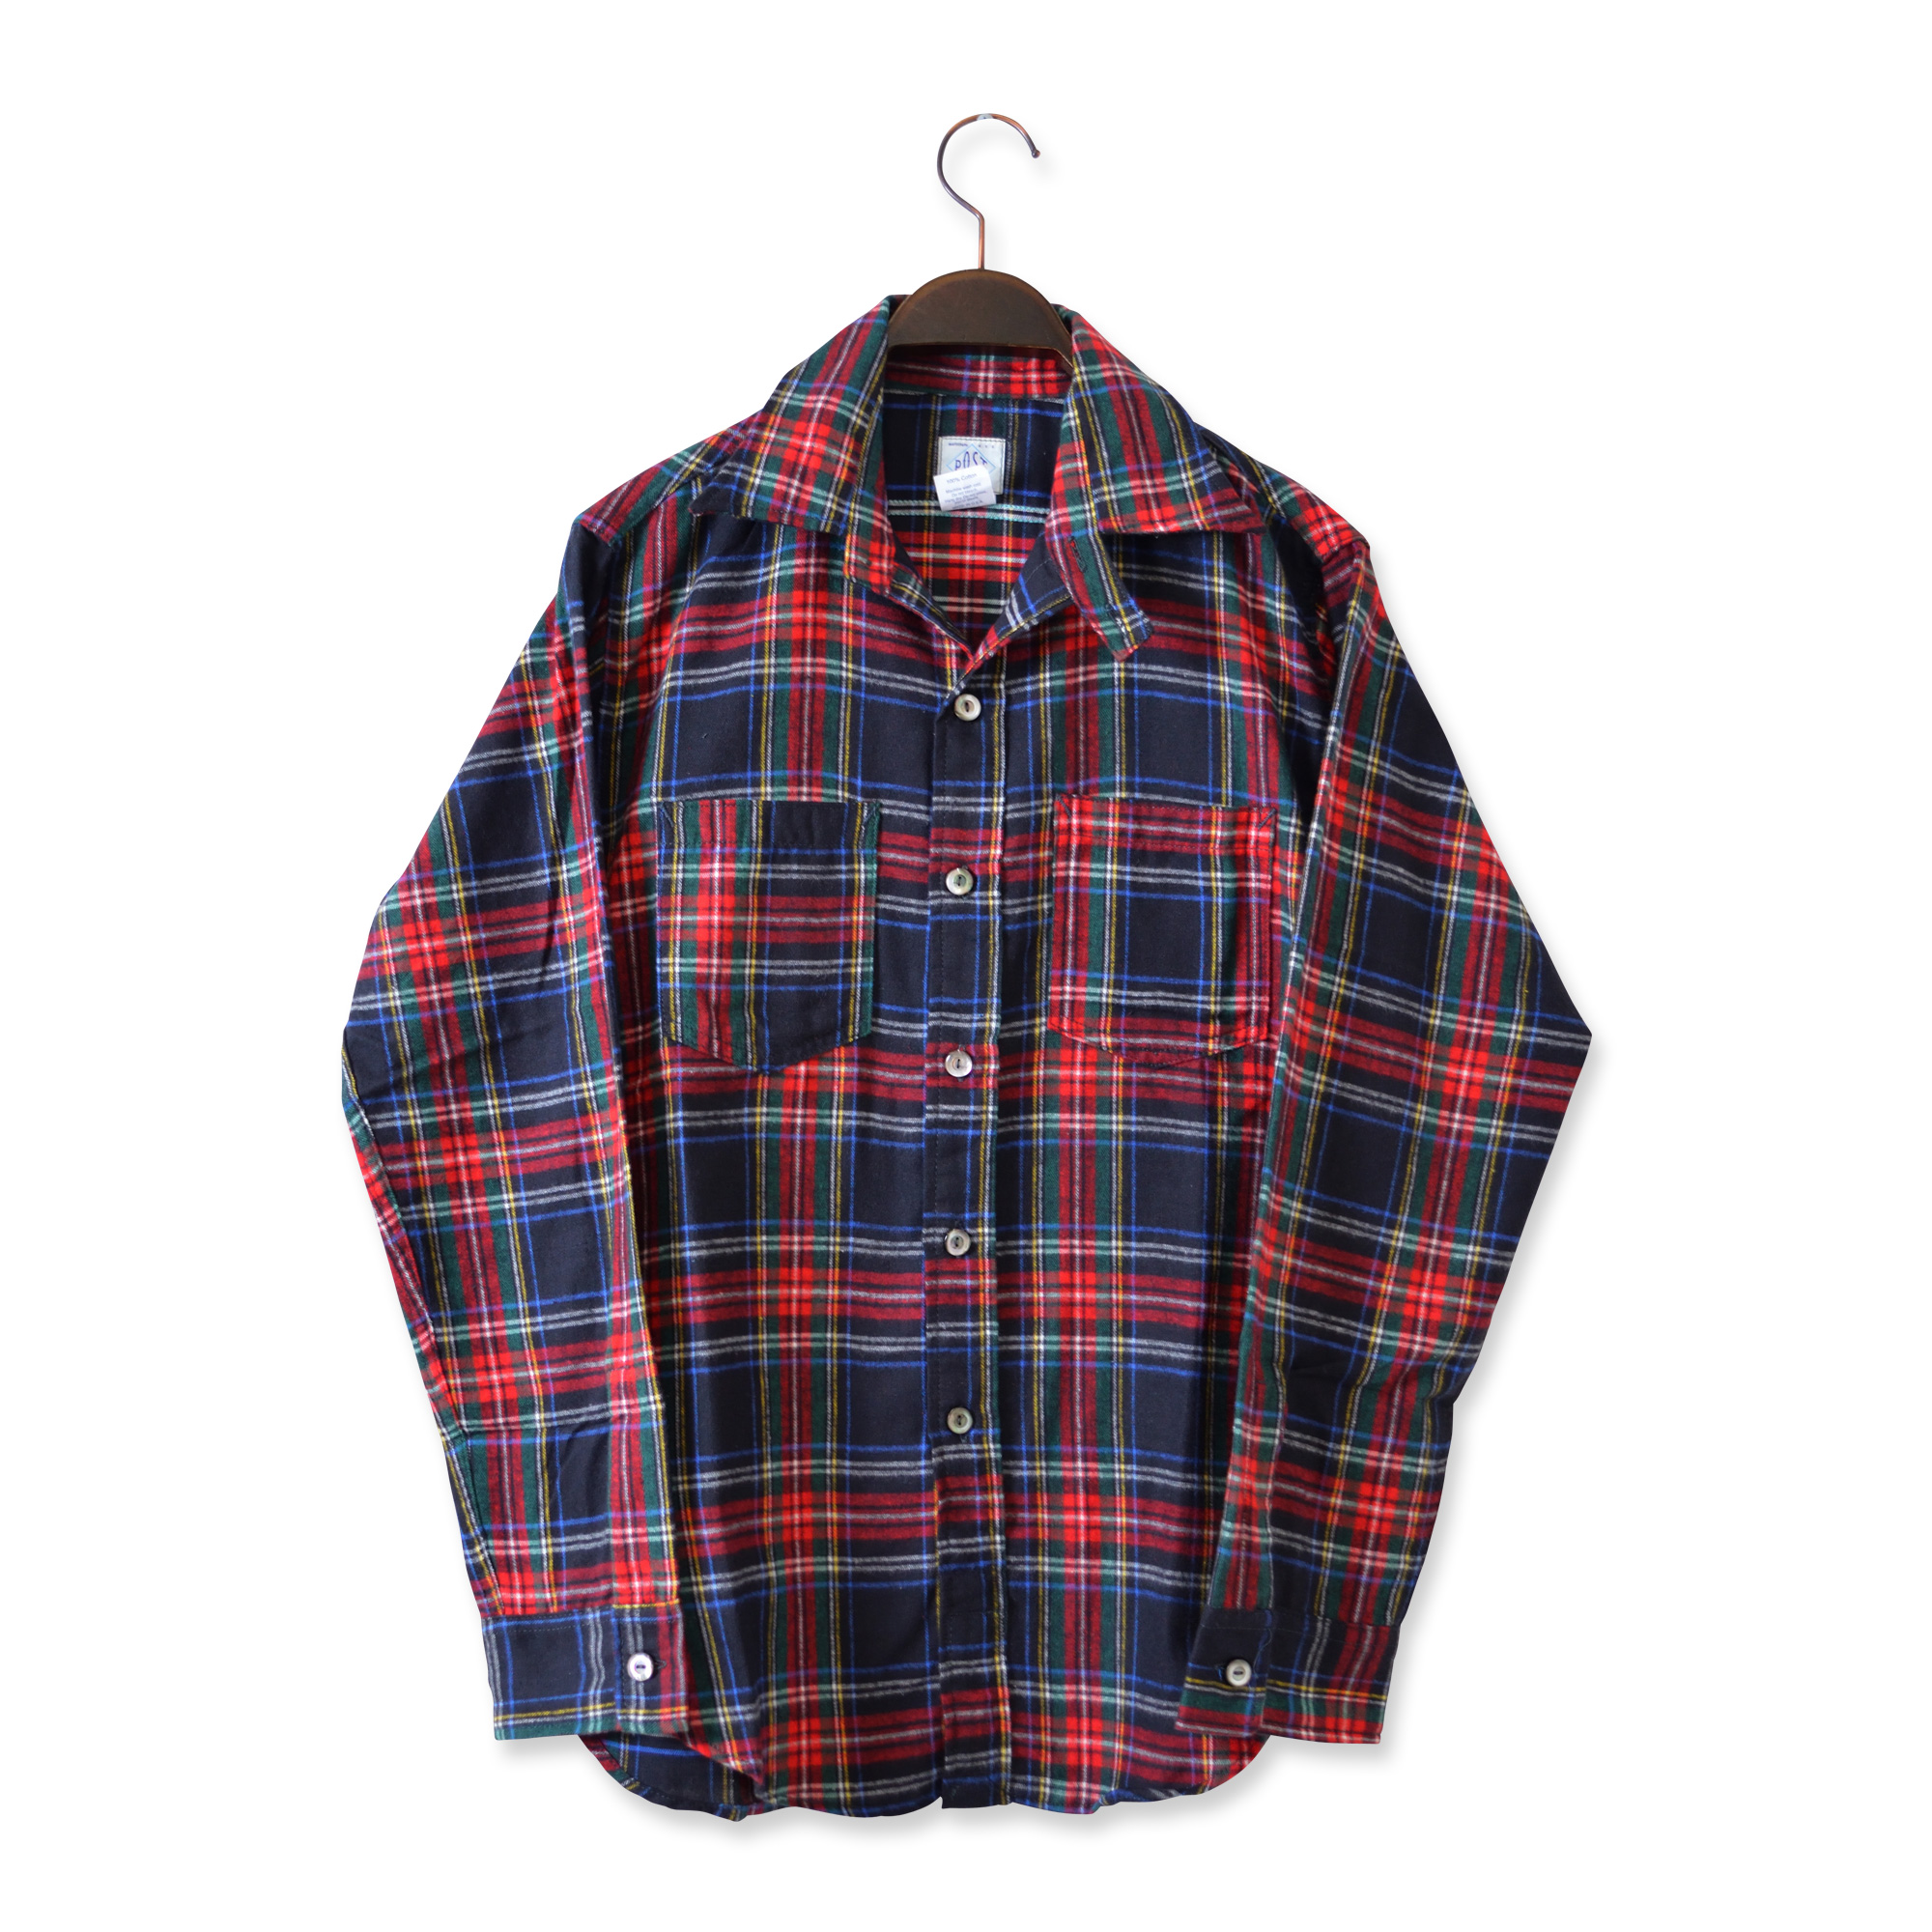 POST OVERALLS(ポストオーバーオールズ)/#2216-FP3 THE POST3-R-W COTTON PLAID FLANNEL